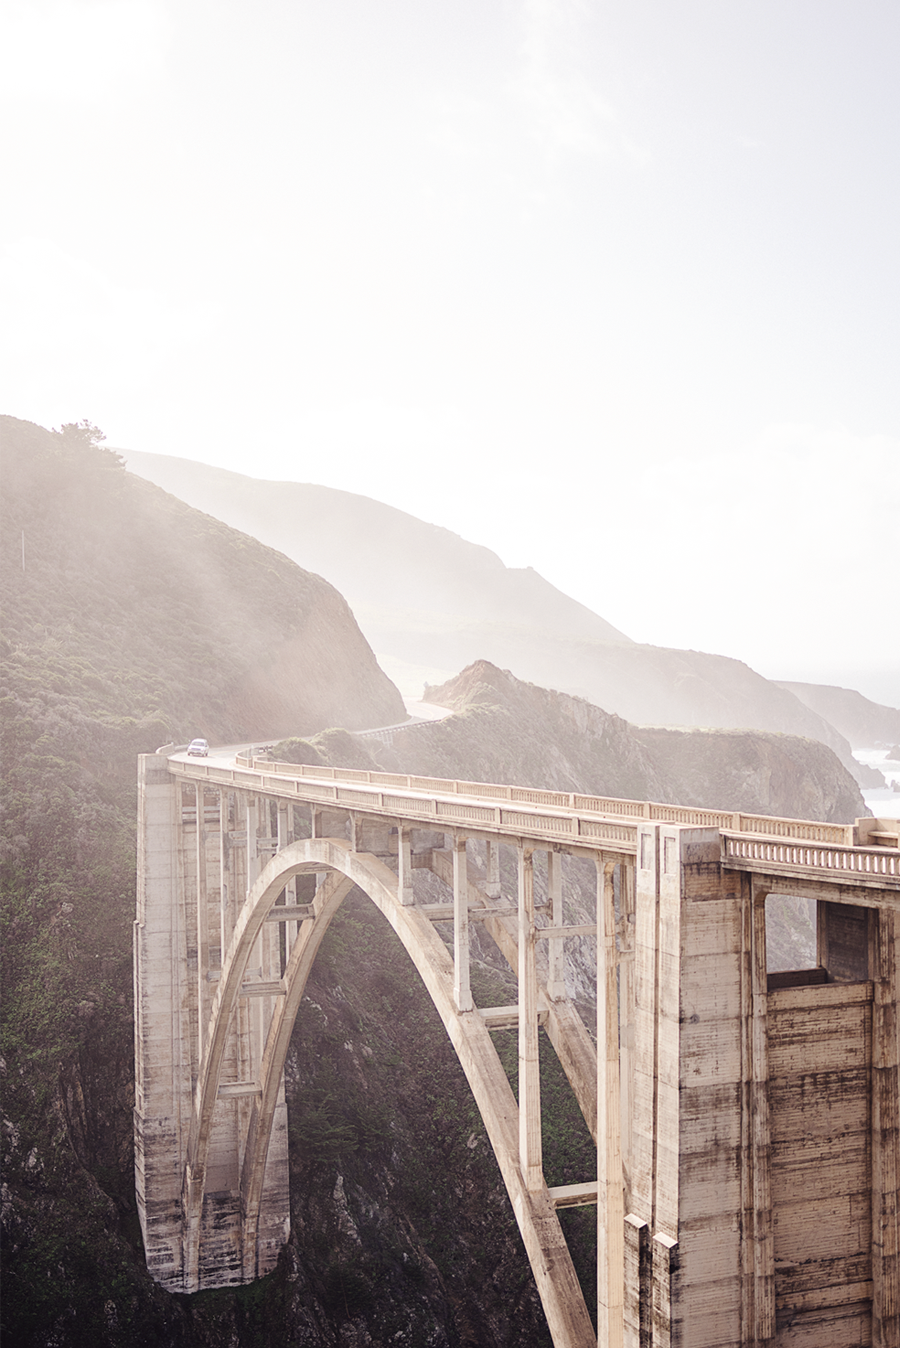 79ideas_bixby_bridge_portrait_from_the_other_side